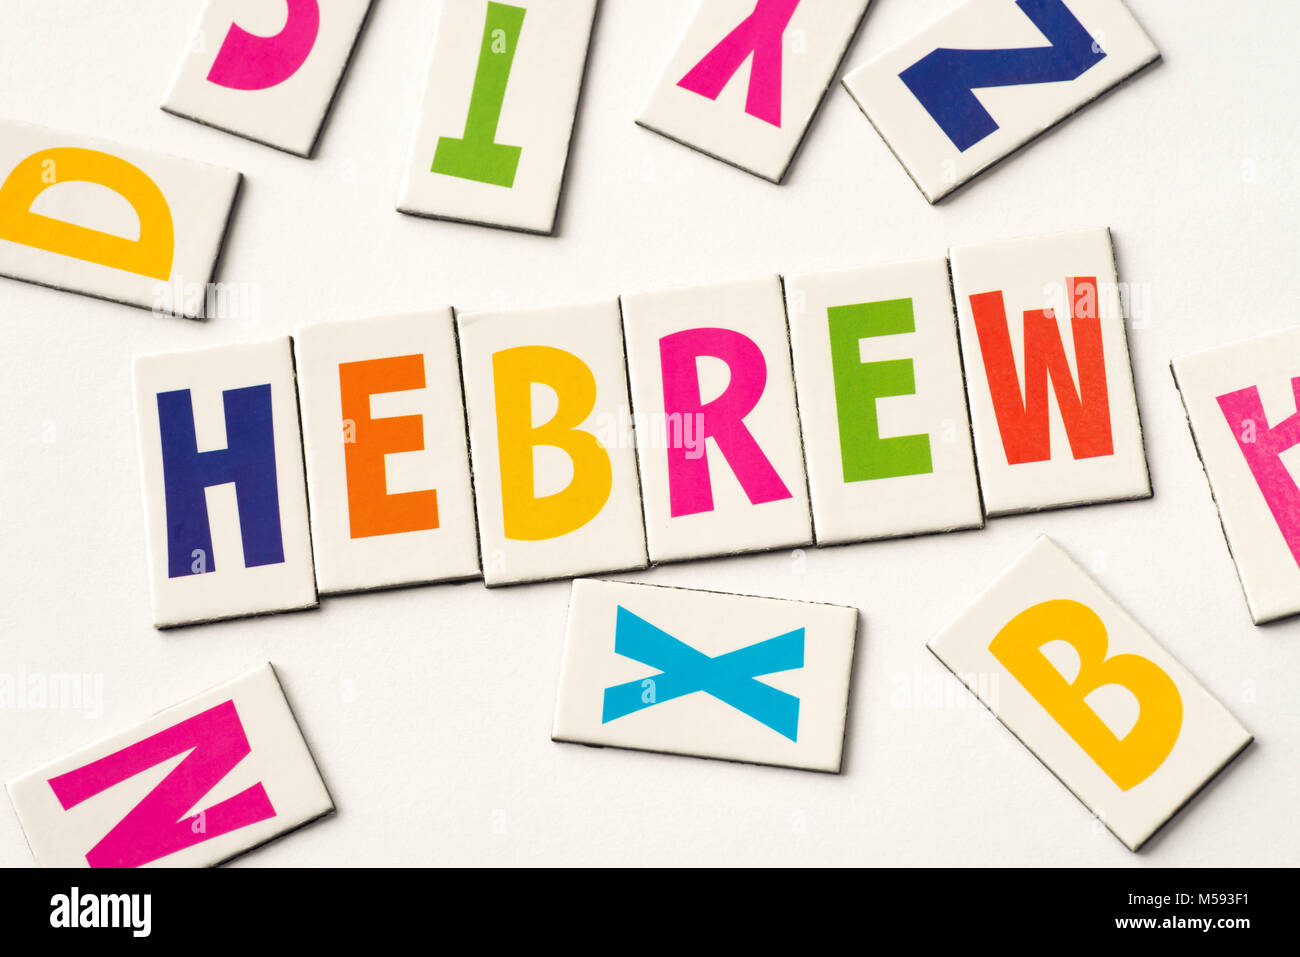 word hebrew made of colorful letters on white background - Stock Image